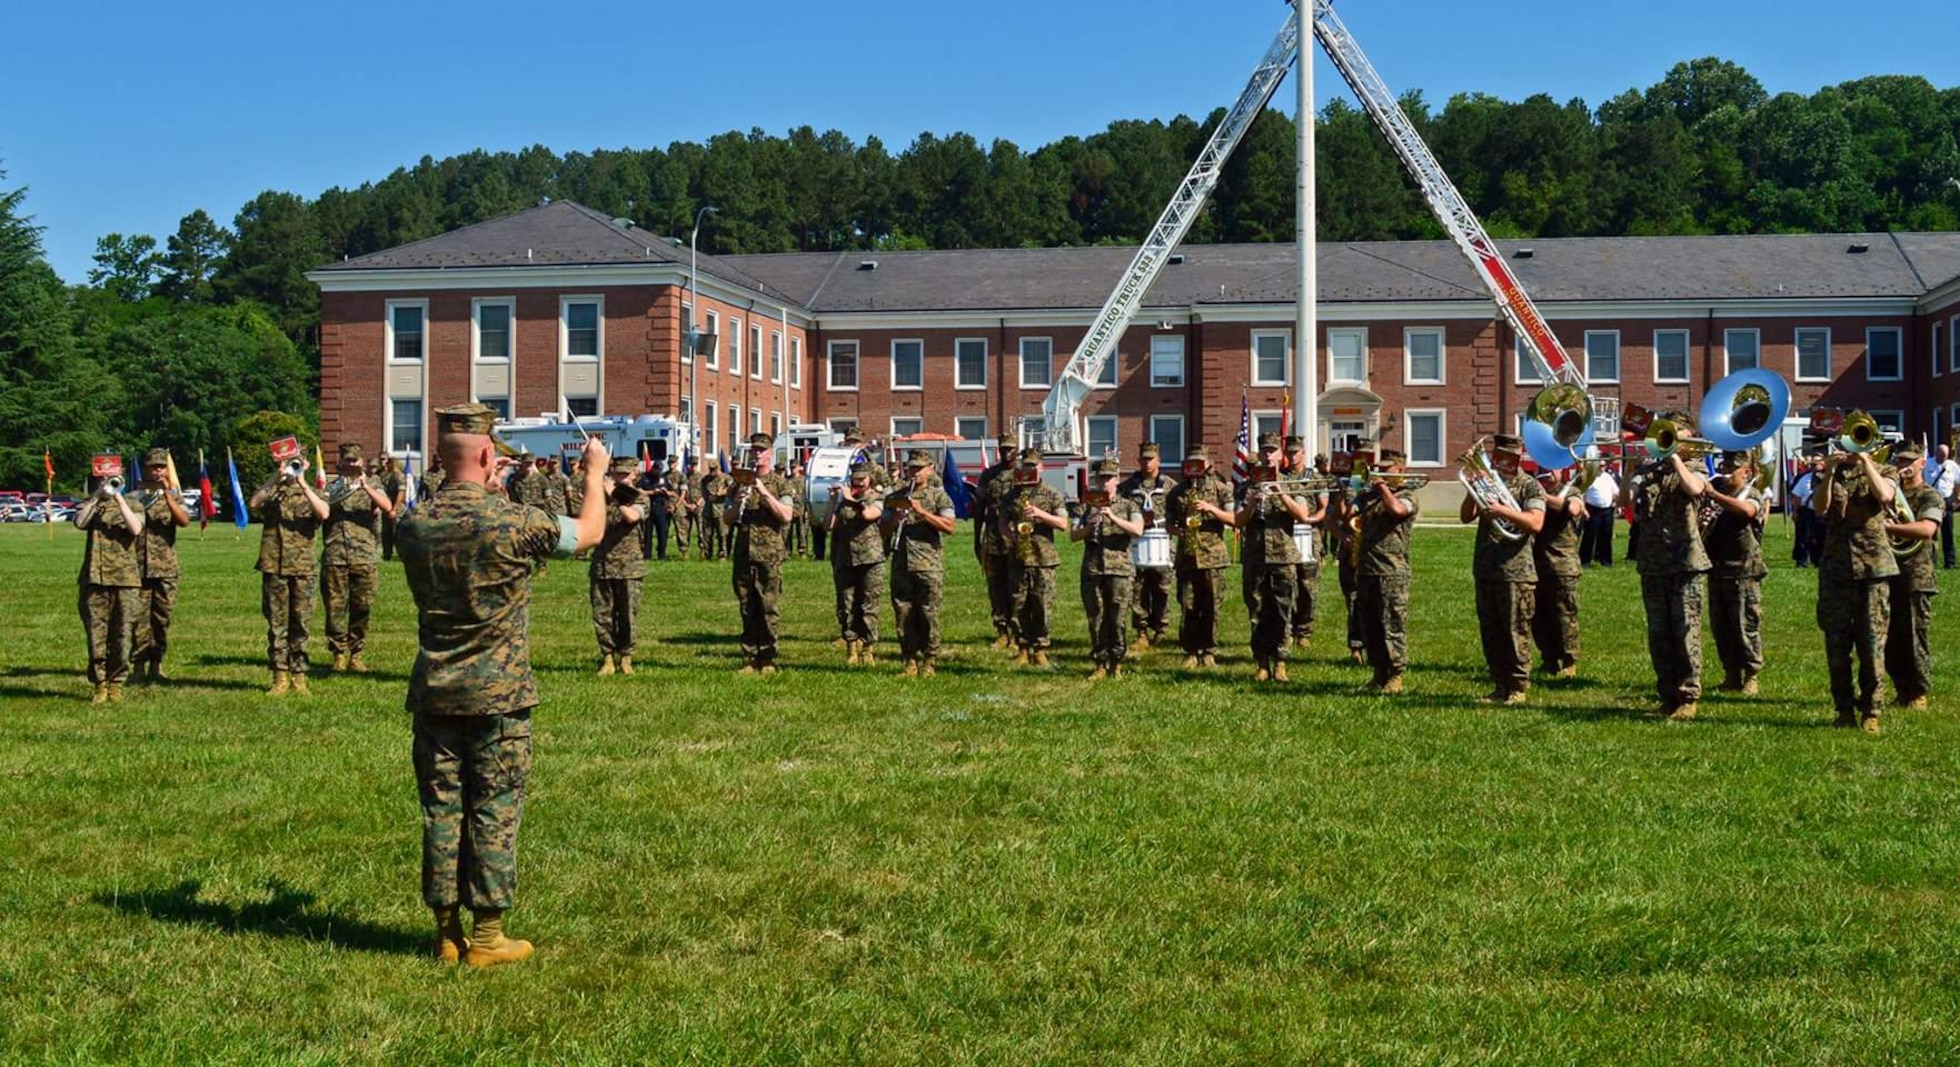 All music from the Security Battalion Change of Command Ceremony was conducted by the MCB Quantico Marine Band.